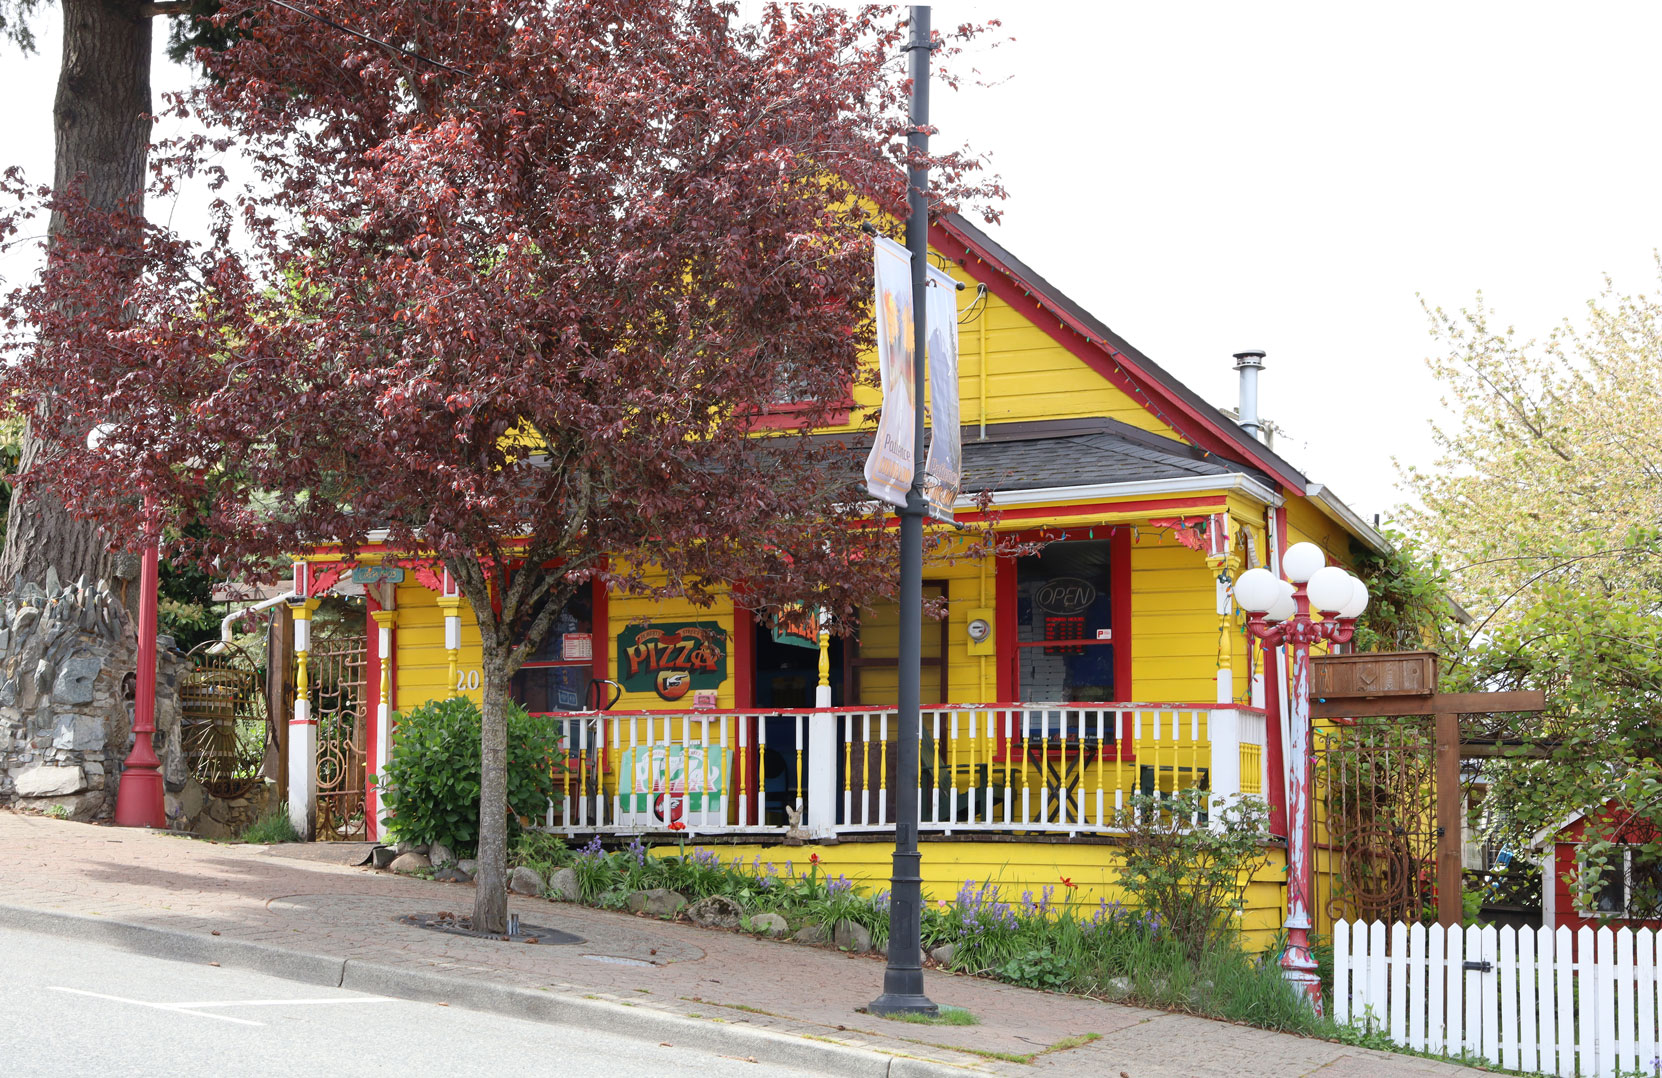 20 Roberts Street in downtown Ladysmith.